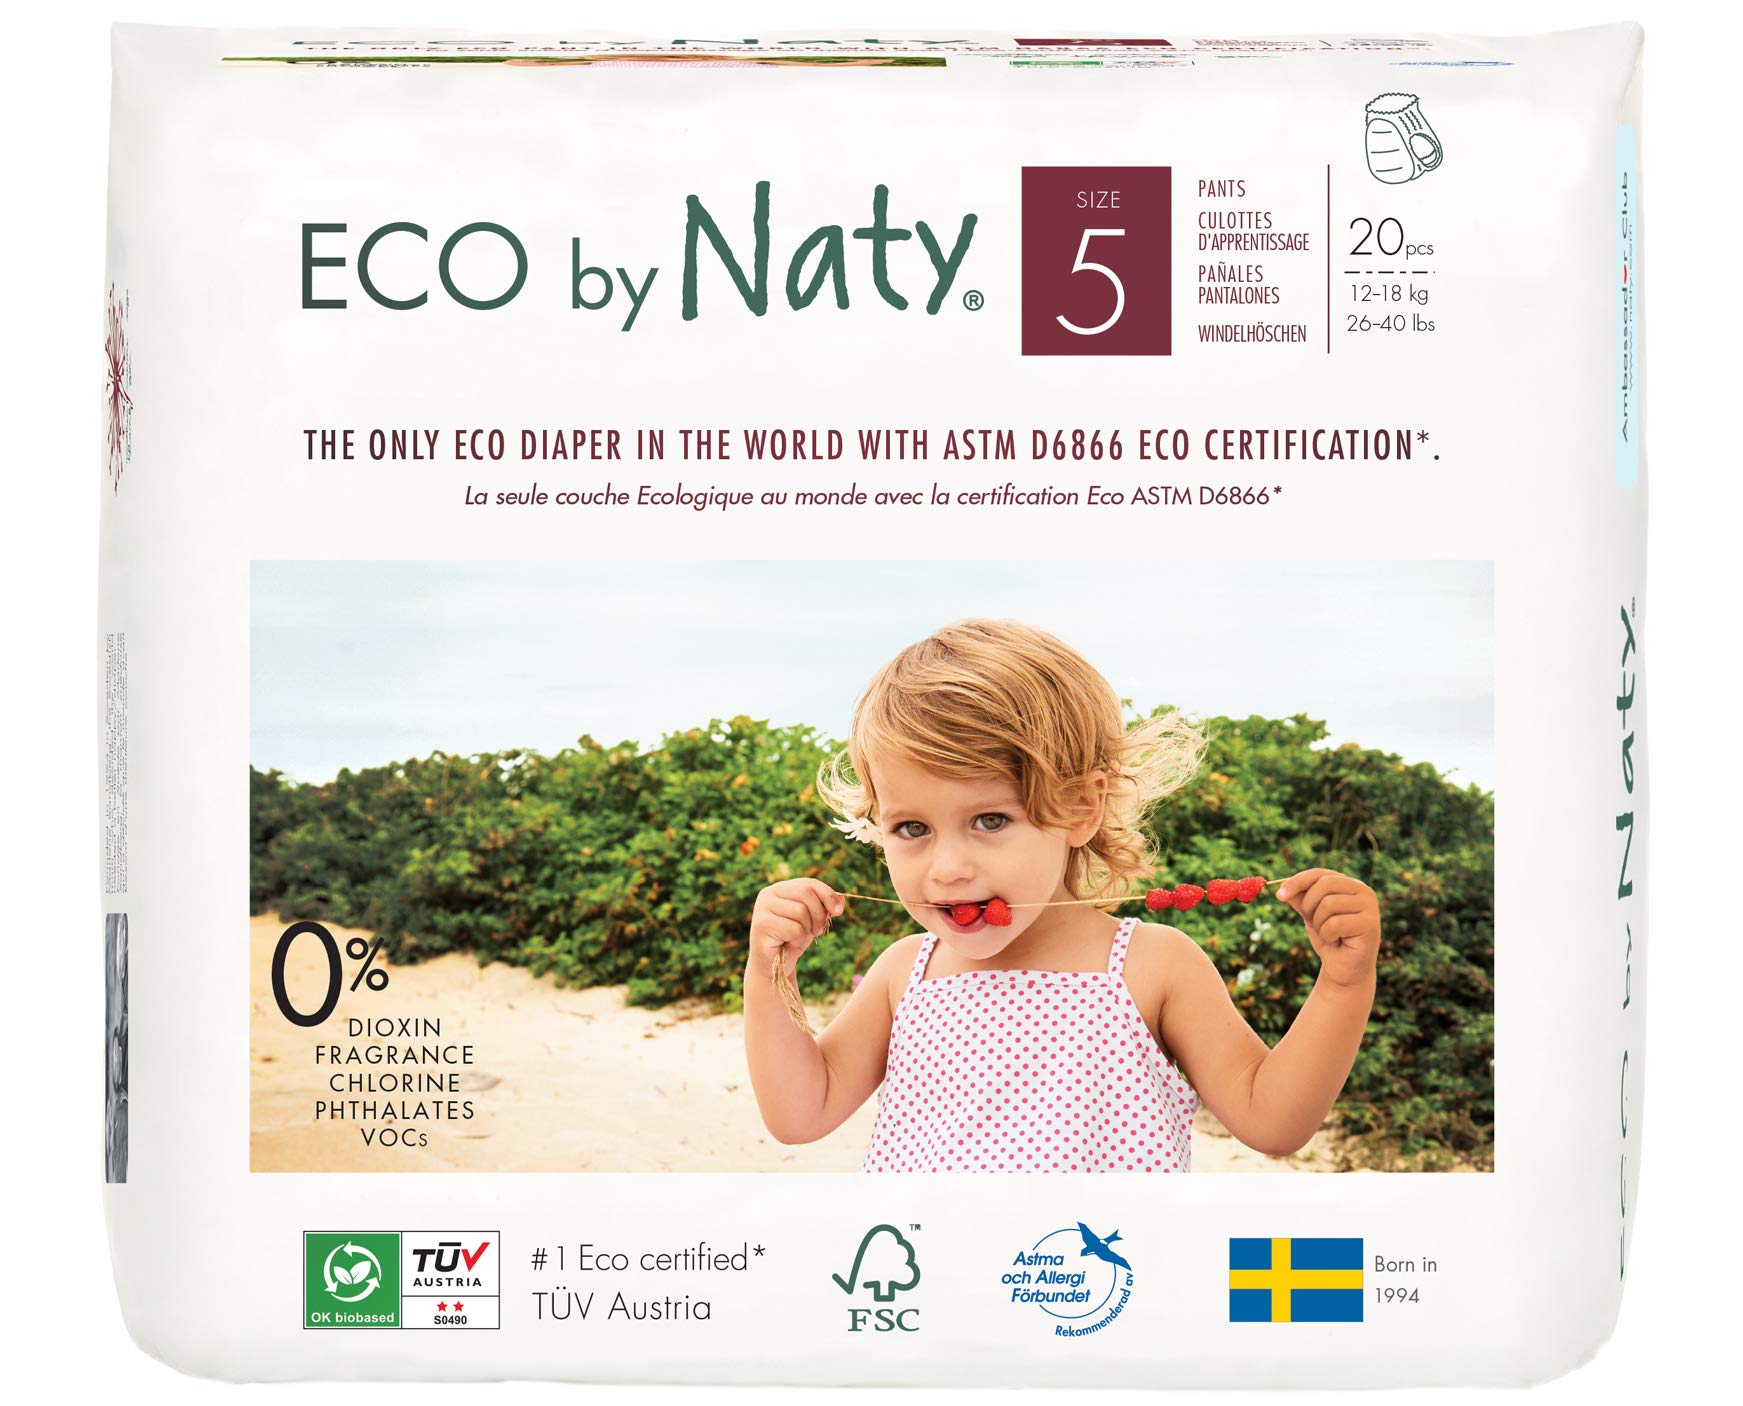 Eco by Naty Premium Pull On Pants for Sensitive Skin, Size 5, 4 Packs of 20 (80 Diaper Pants) by Eco by Naty